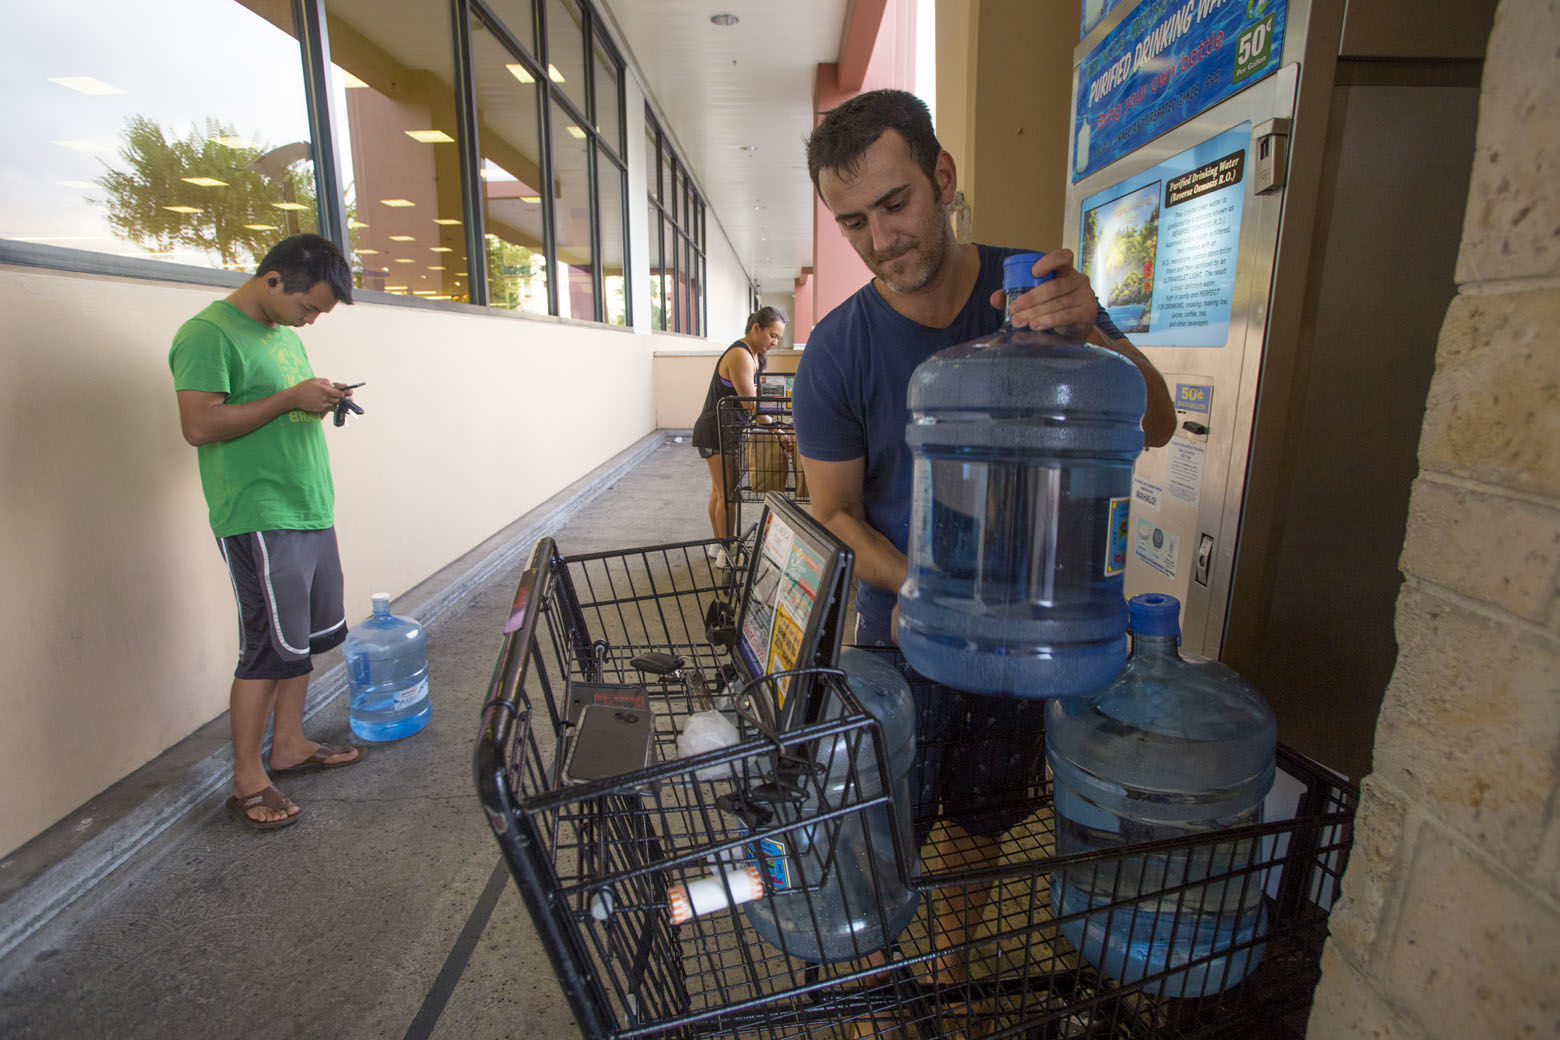 HONOLULU, HI - AUGUST 22: Wenkai He, left, waits his turn to fill up his 3 gallon water jug for just $1.50, while Alex Krivoulian fills three times as many water jugs at Safeway on Kapahulu in preparation for Hurricane Lane on Wednesday, August 22, 2018 in Honolulu, Hawaii. Hurricane Lane is a high-end Category 4 hurricane and remains a threat to the entire island chain. (Photo by Kat Wade/Getty Images)